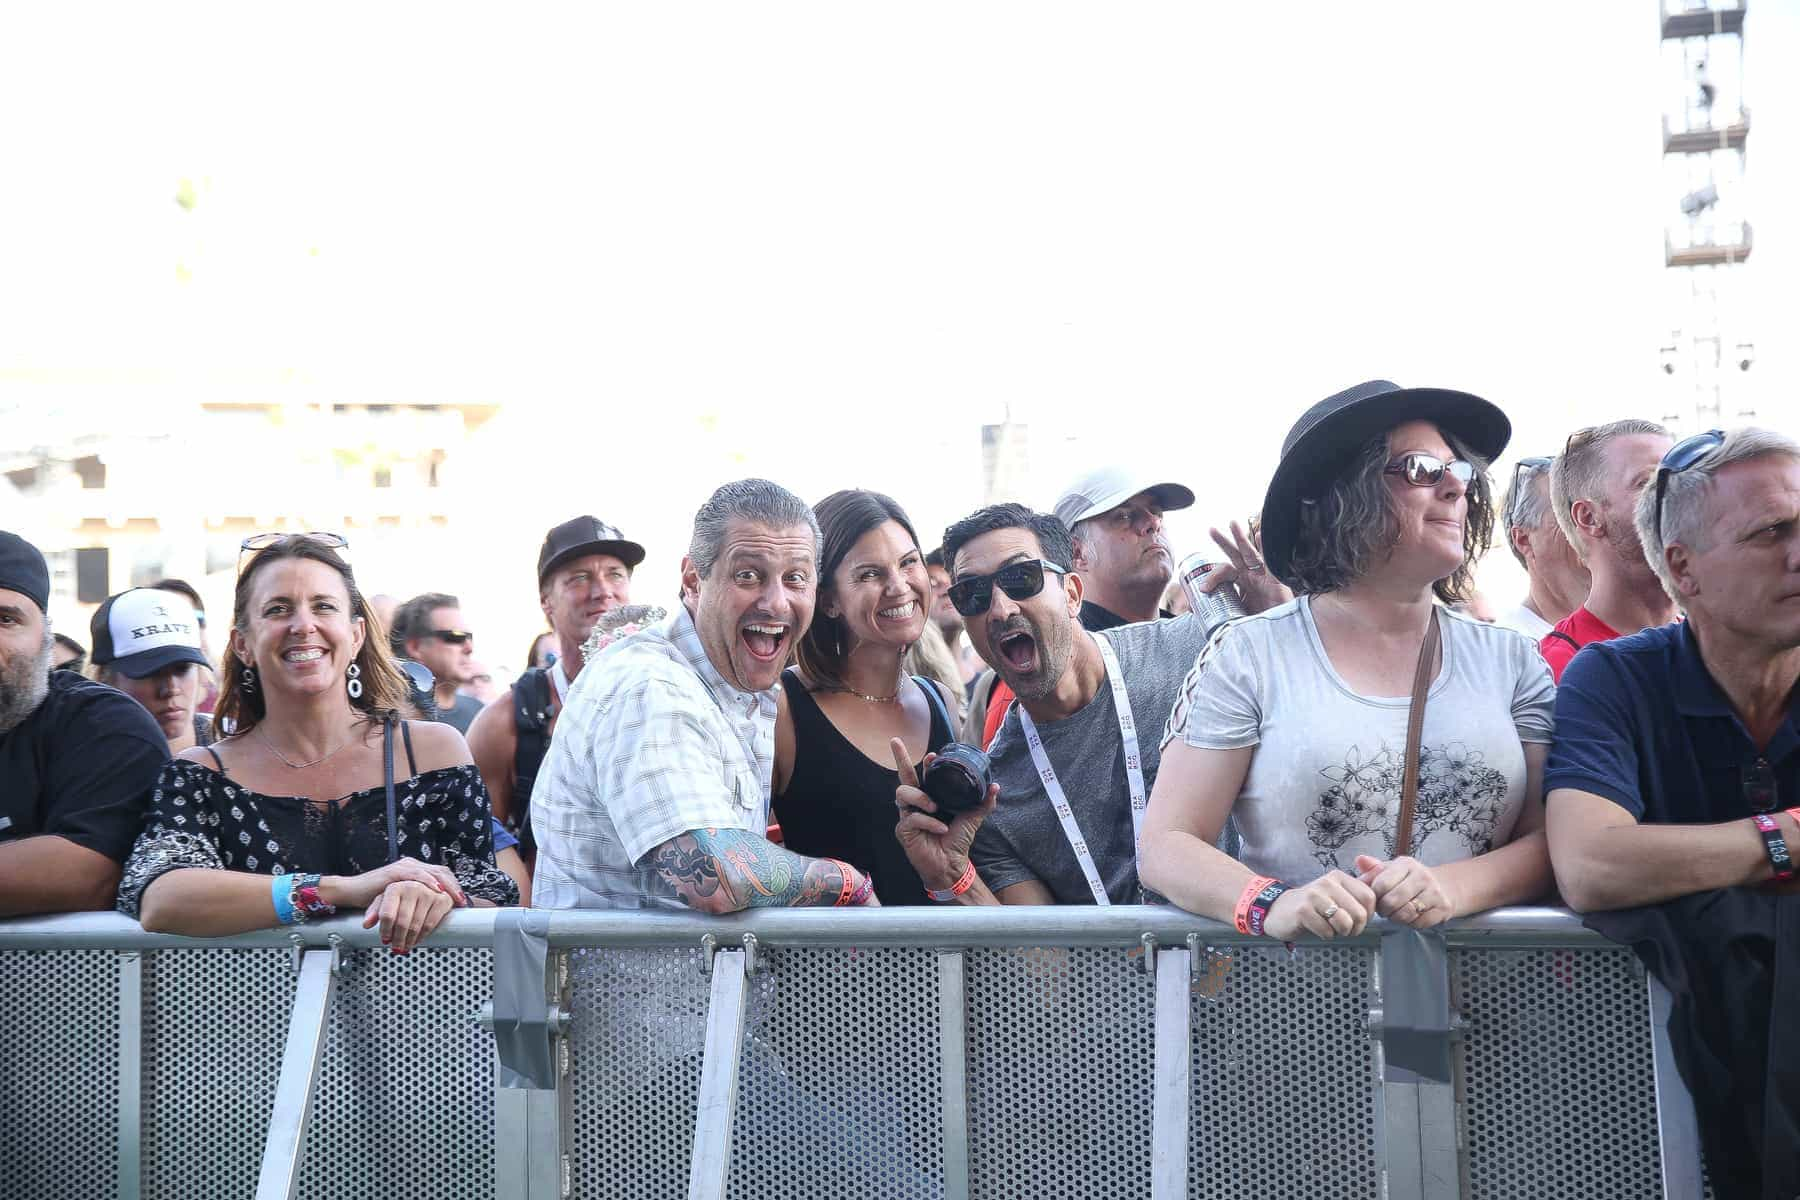 Bobby and Nicky at KAABOO